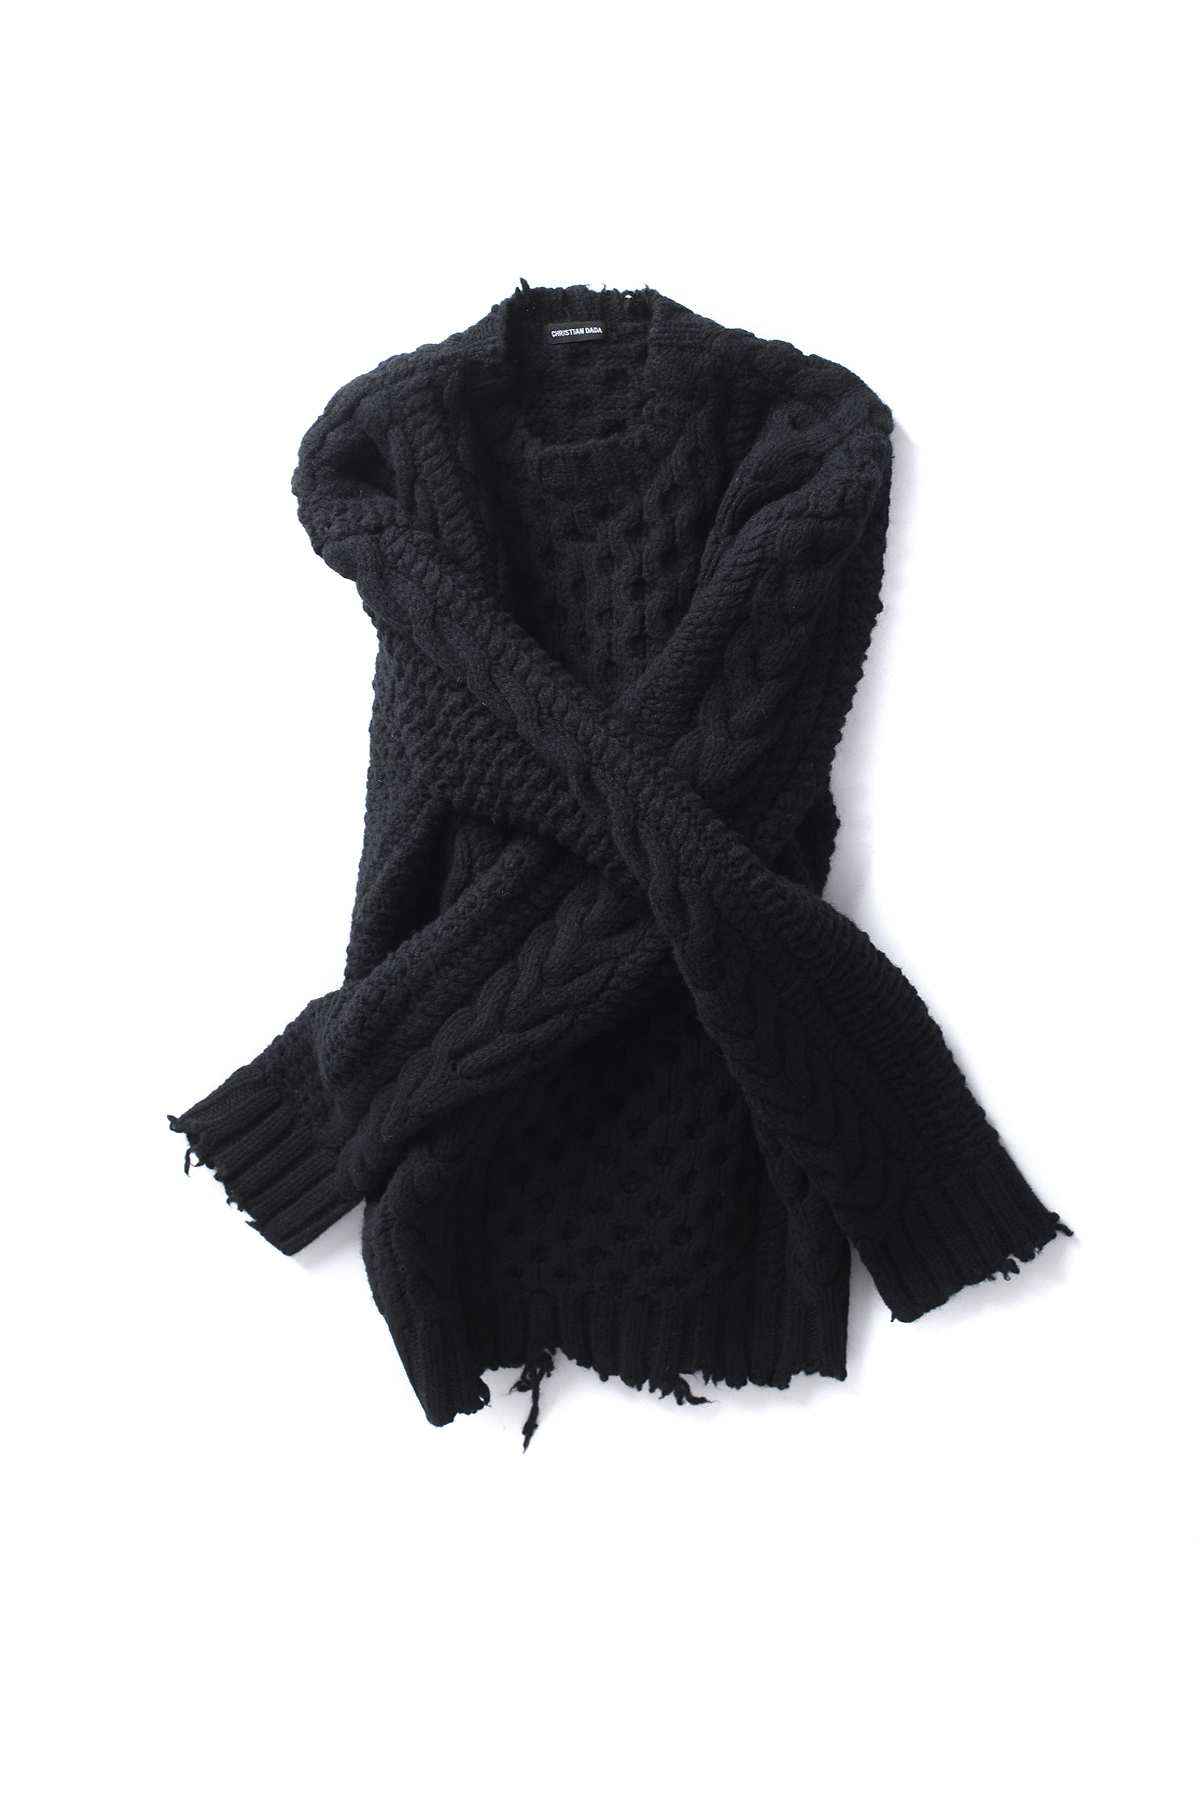 Christian Dada : Damaged Cable Knit Sweater (Black)